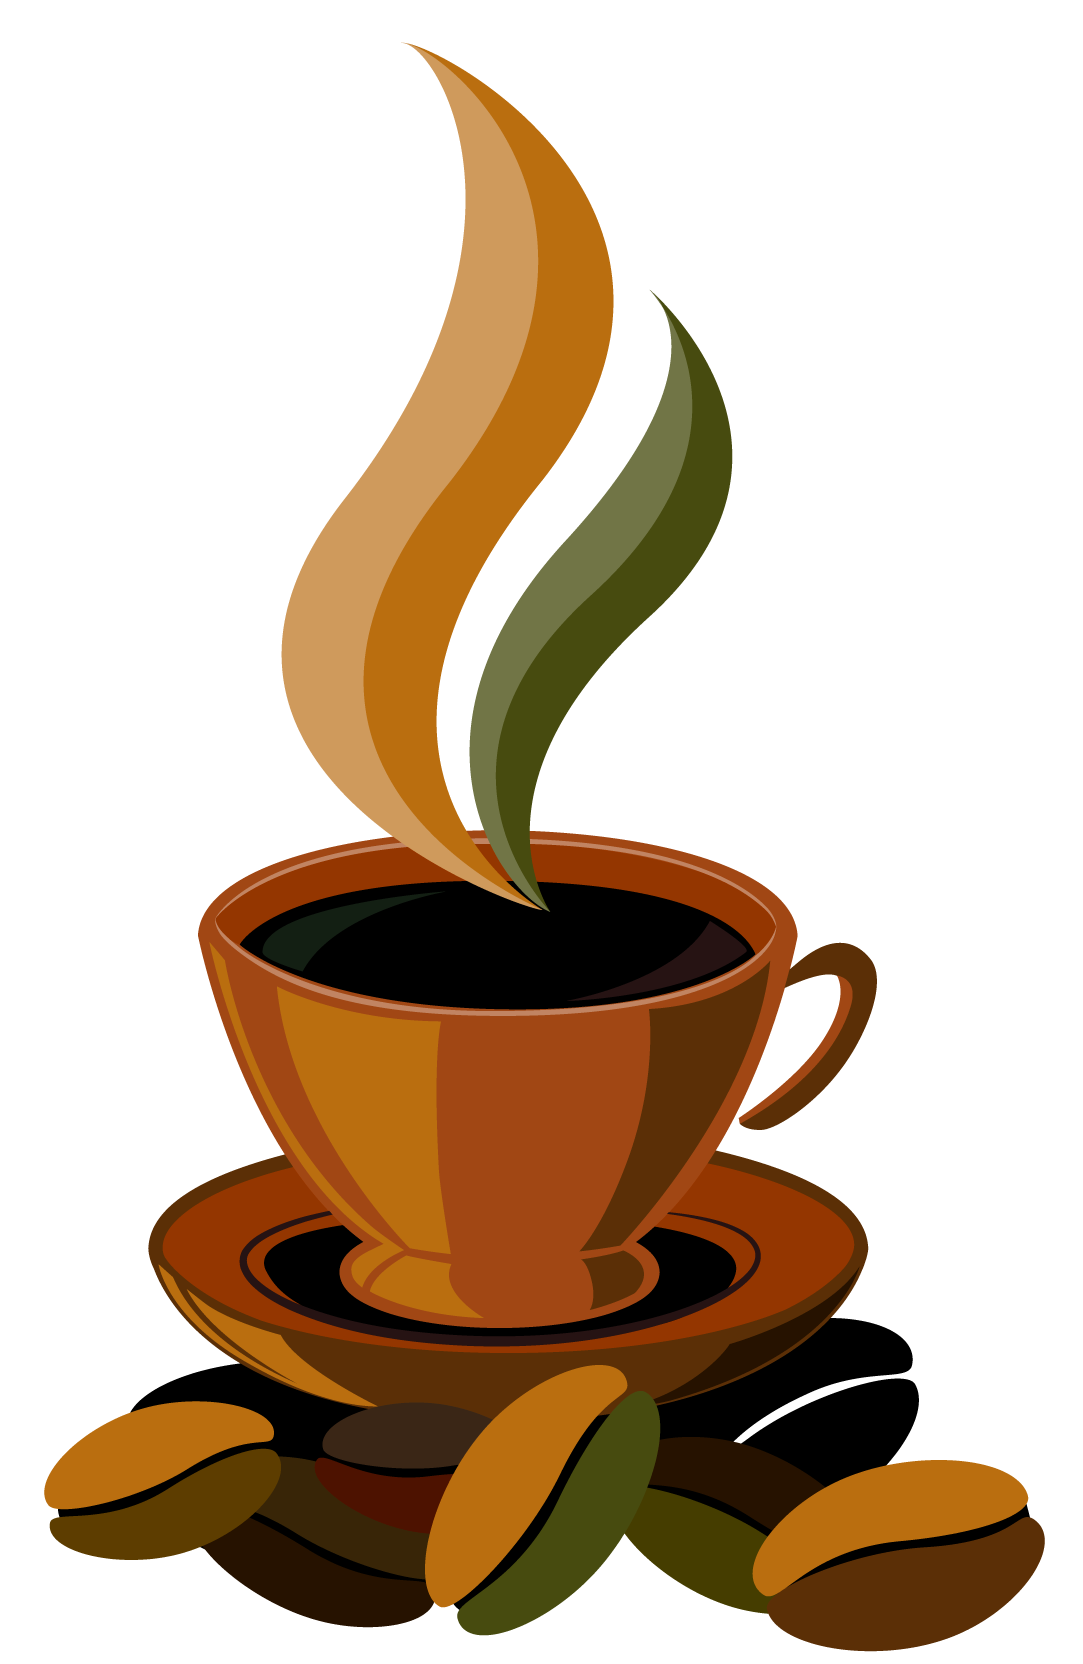 Coffee clipart caffeine. Cup png vector gallery